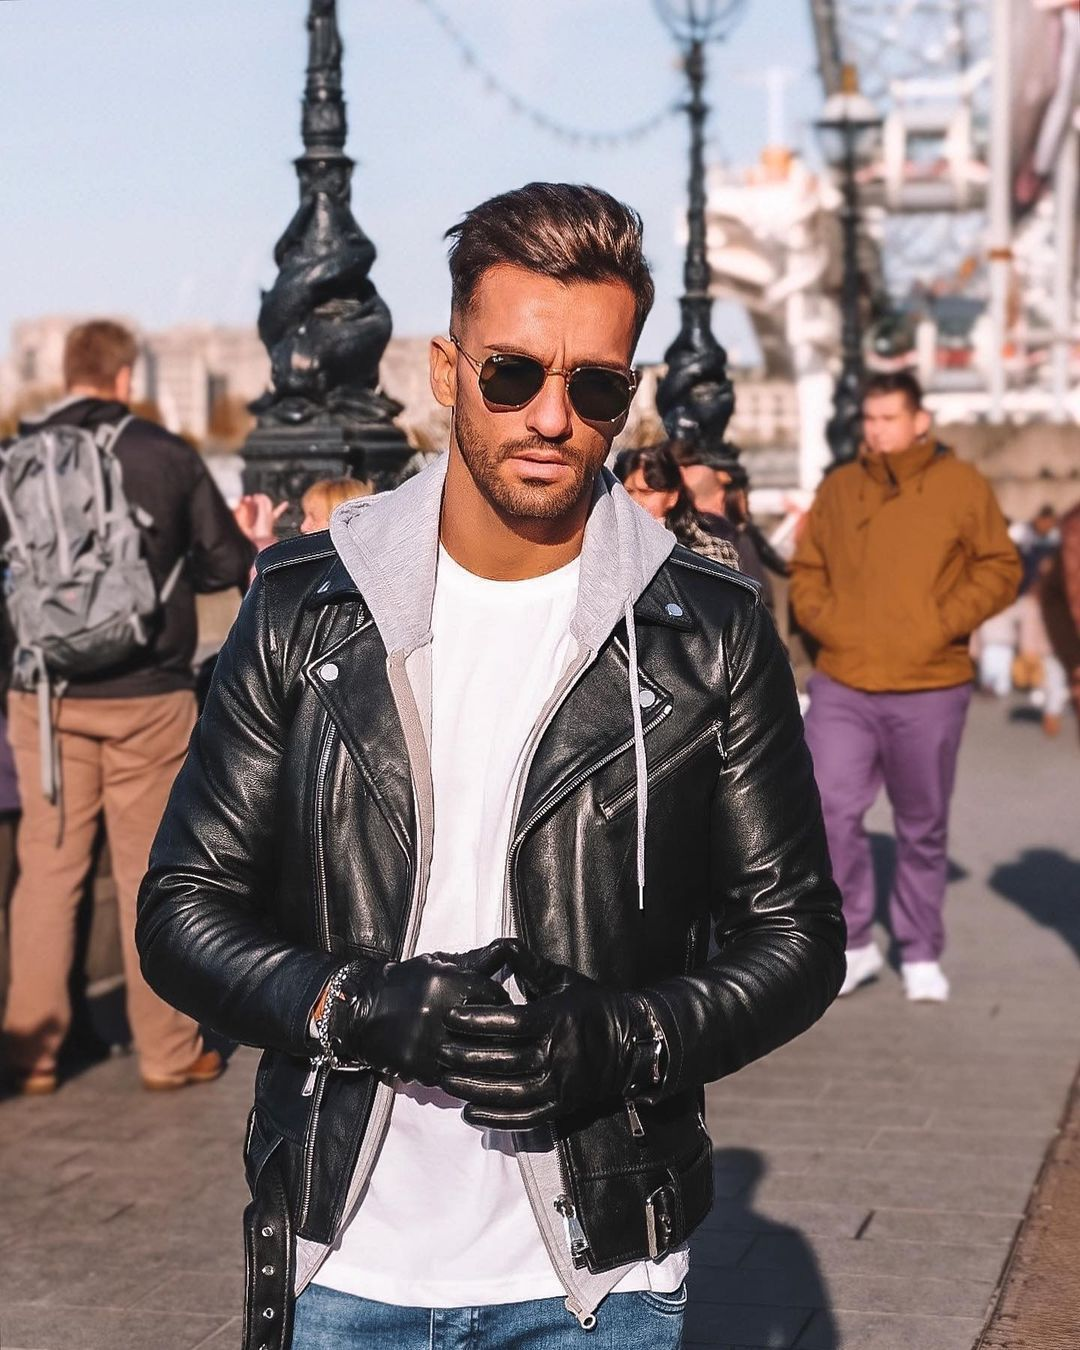 Pin By Dave On Leather Jeans Men In 2021 Leather Jacket Men Mens Outfits Leather Jacket